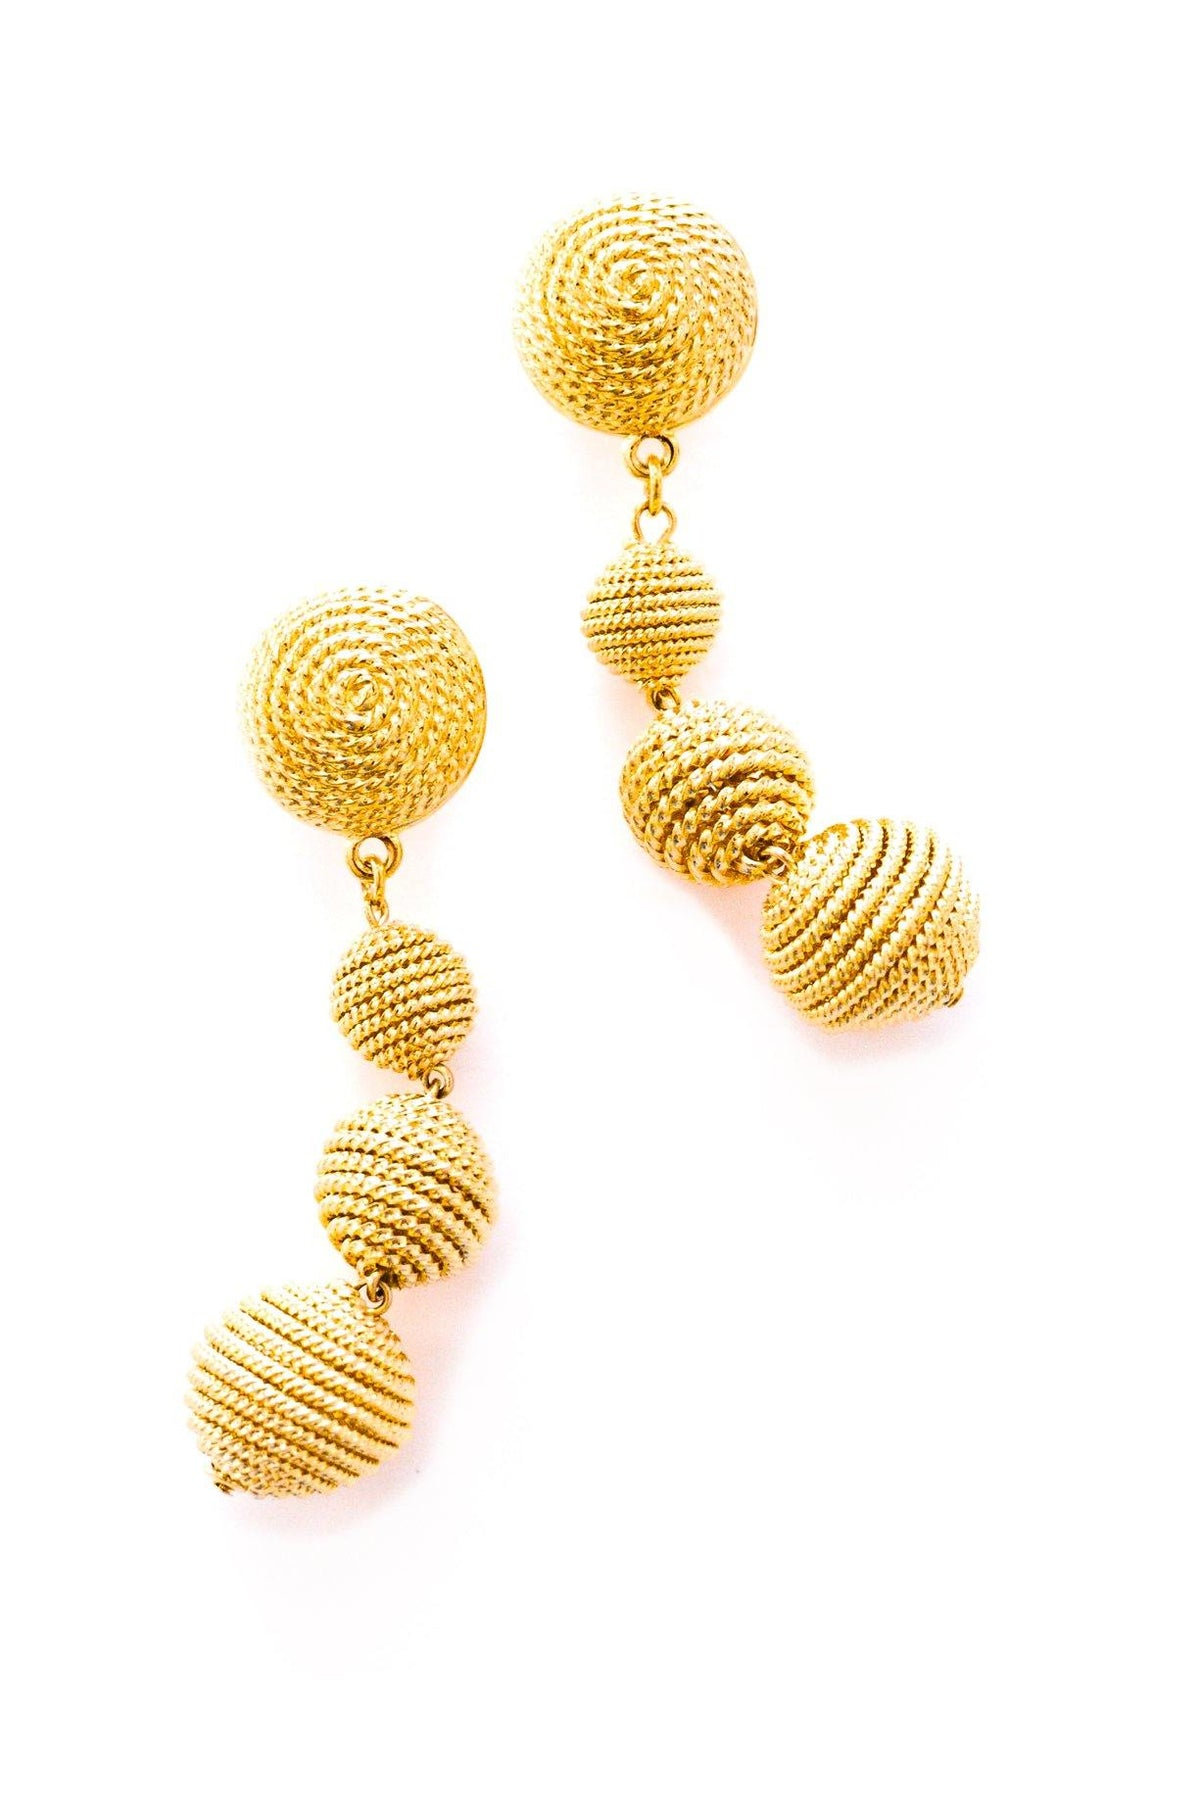 Vintage Napier statement rope ball drop earrings from Sweet & Spark.